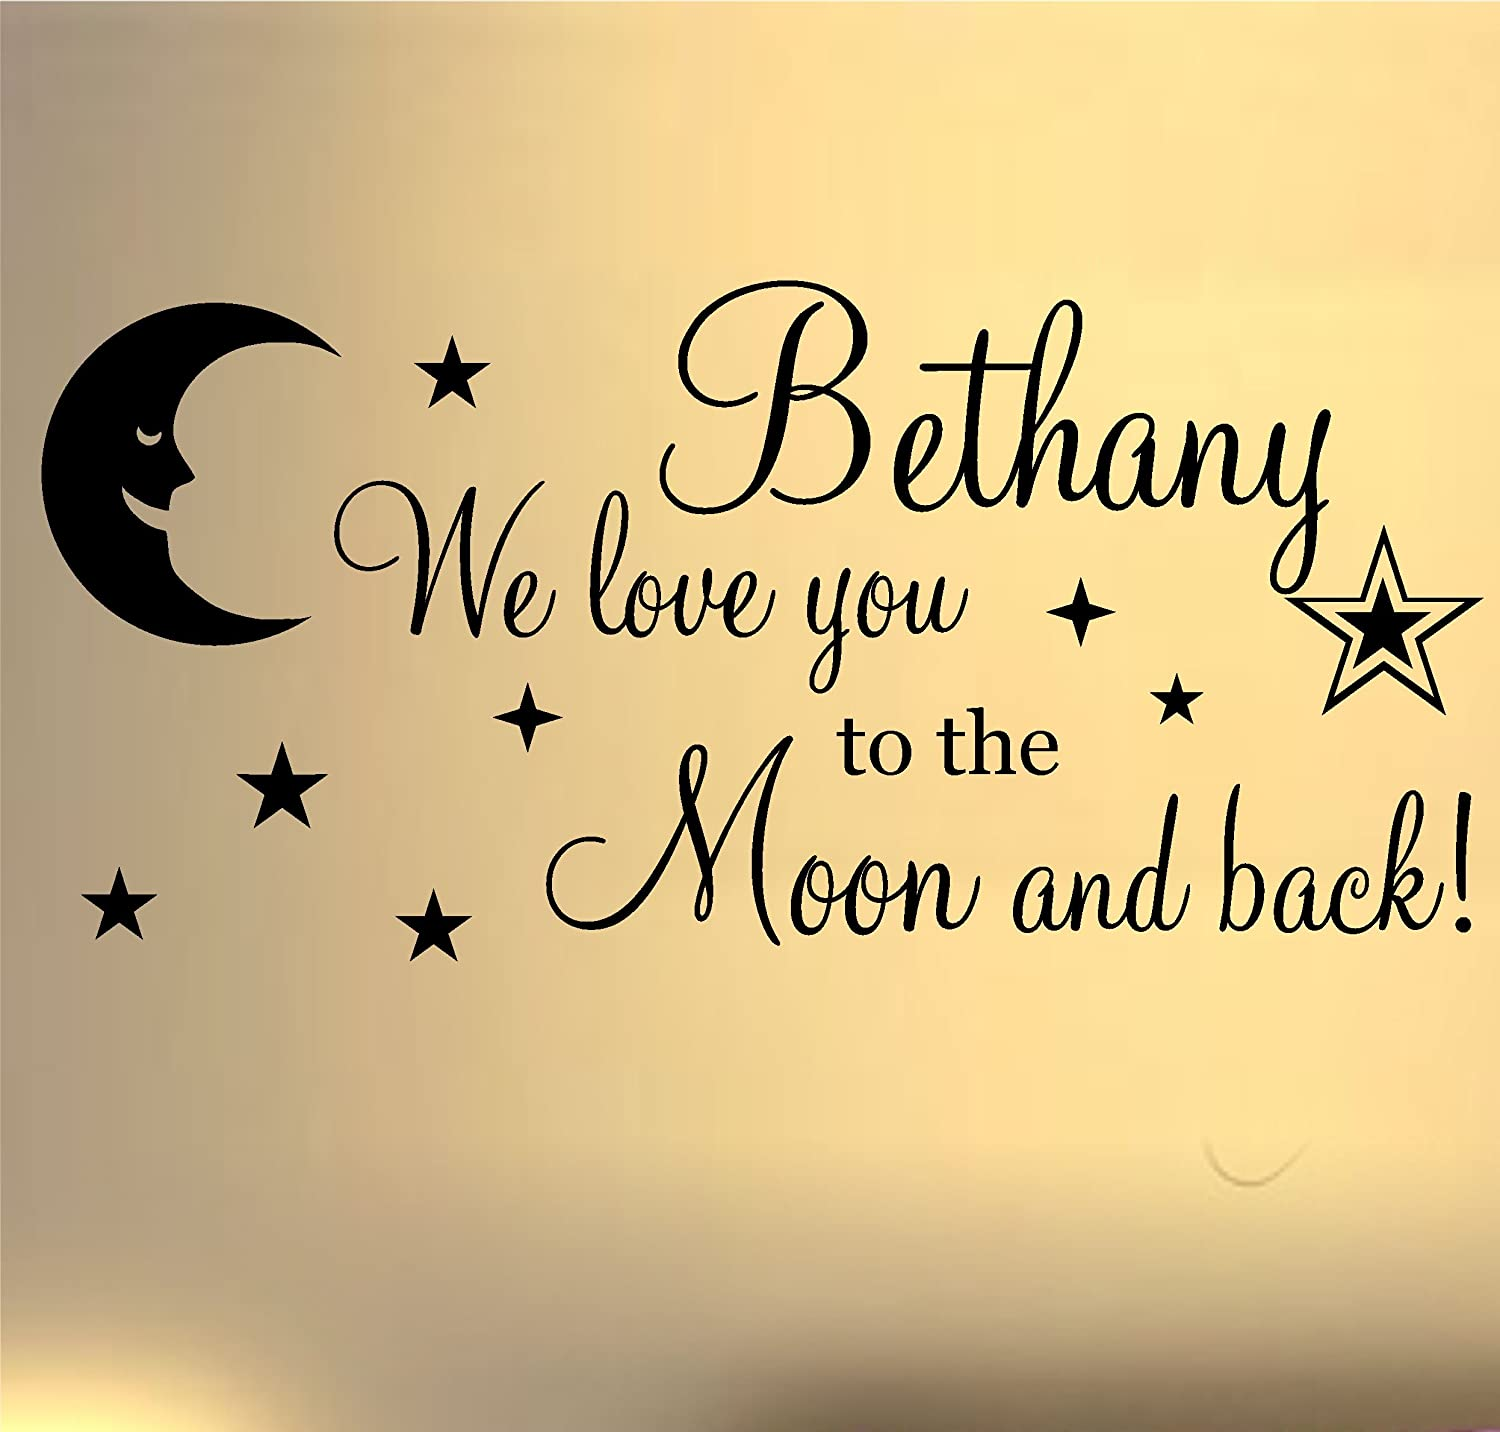 Amazon.com: WE LOVE YOU TO THE MOON AND BACK WALL ART STICKER QUOTE ...